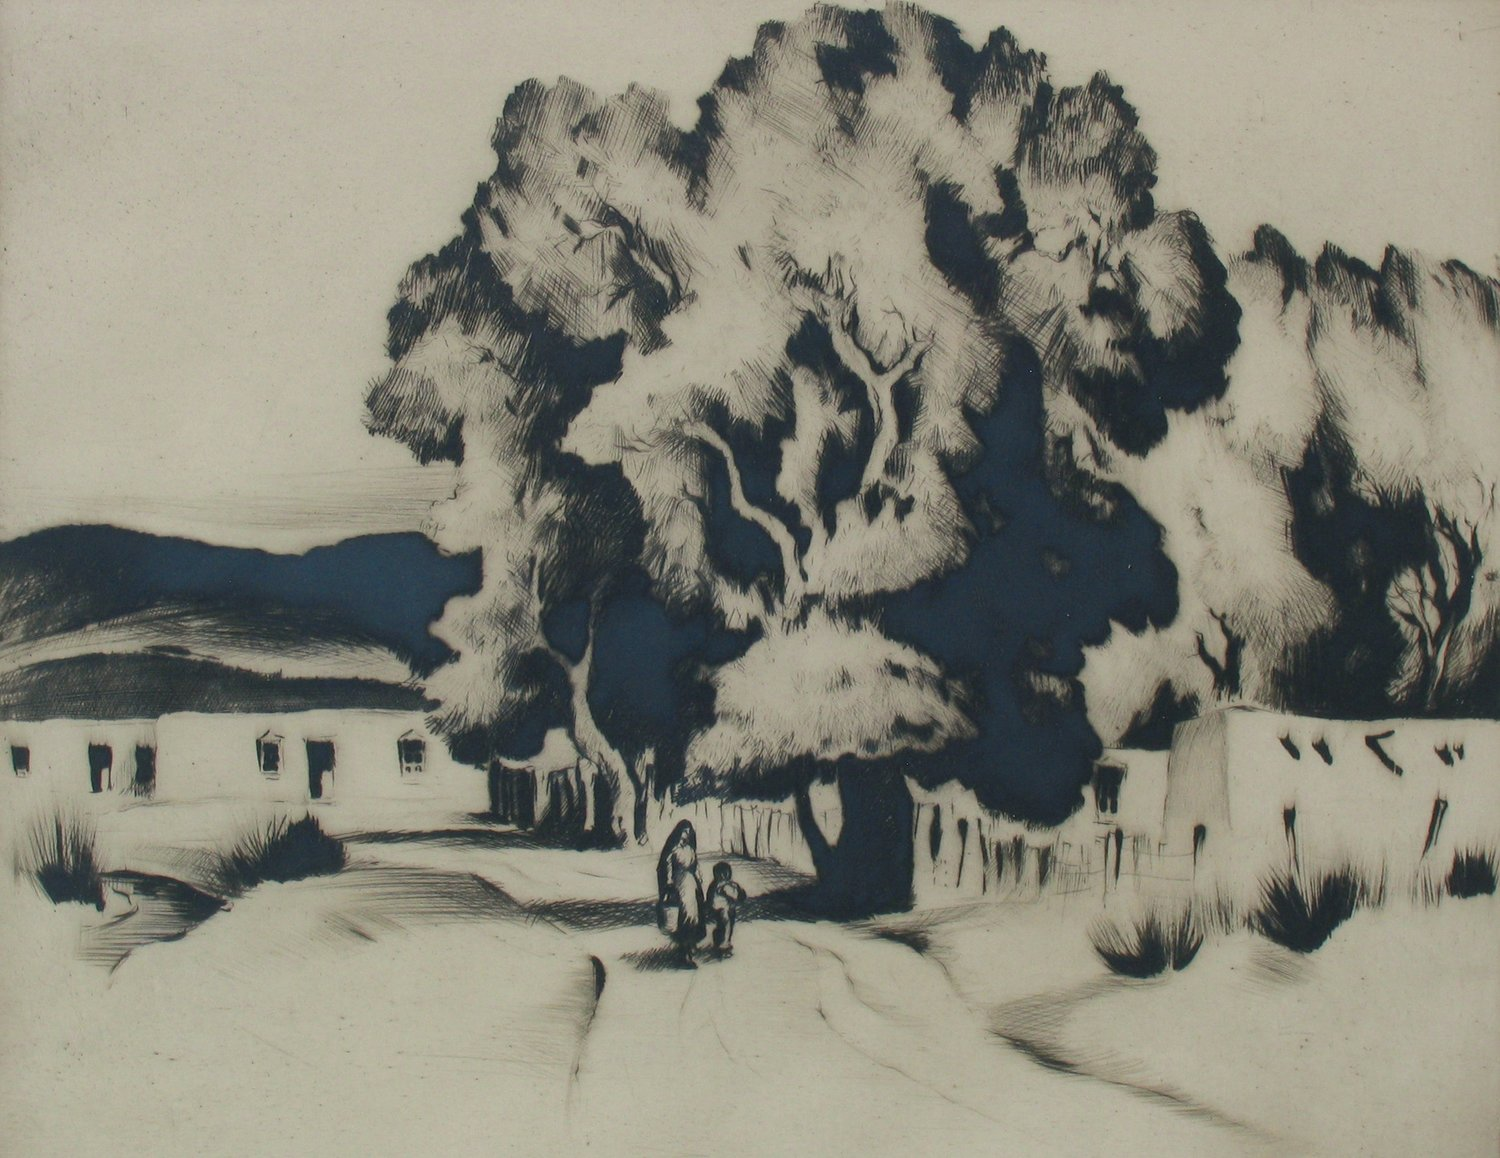 Summer Cottonwoods , 1935, drypoint, 5 7/8 x 7 3/8 inches, ed. of 20